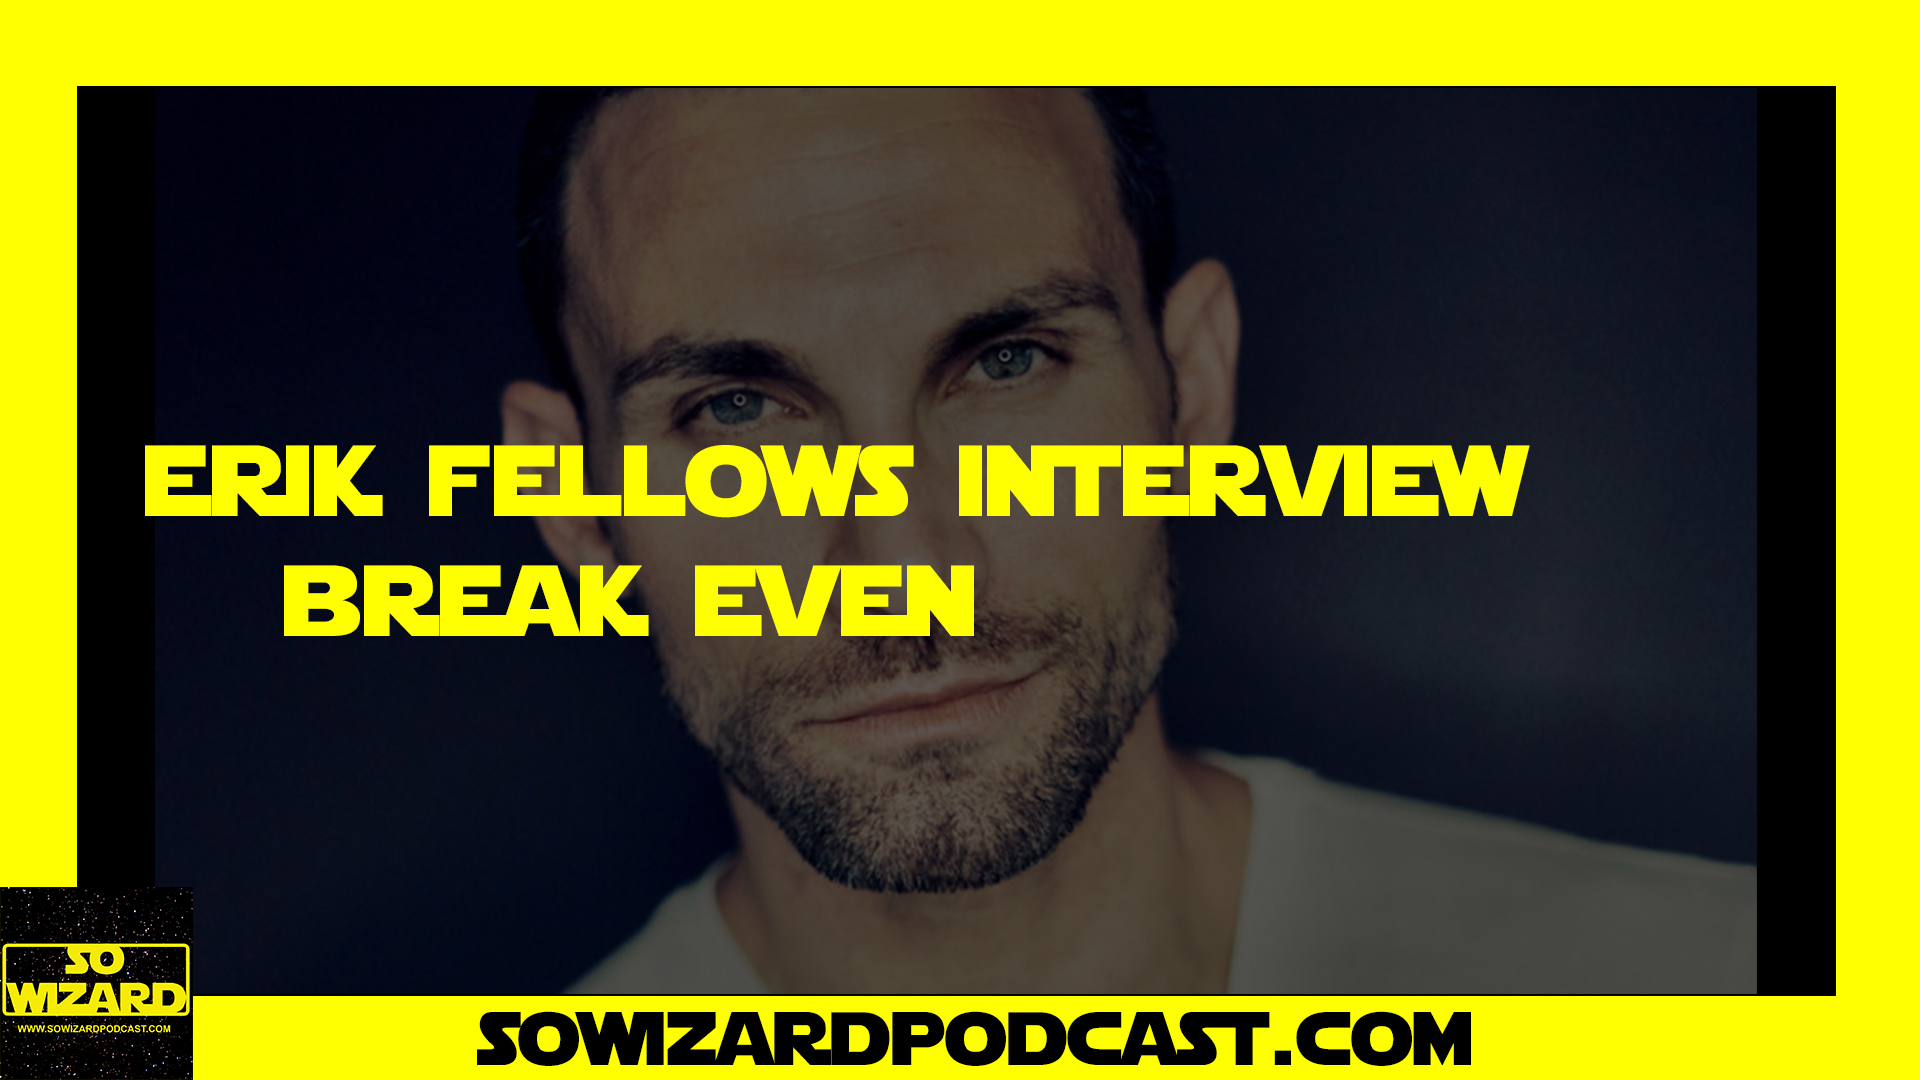 Erik Fellows Interview